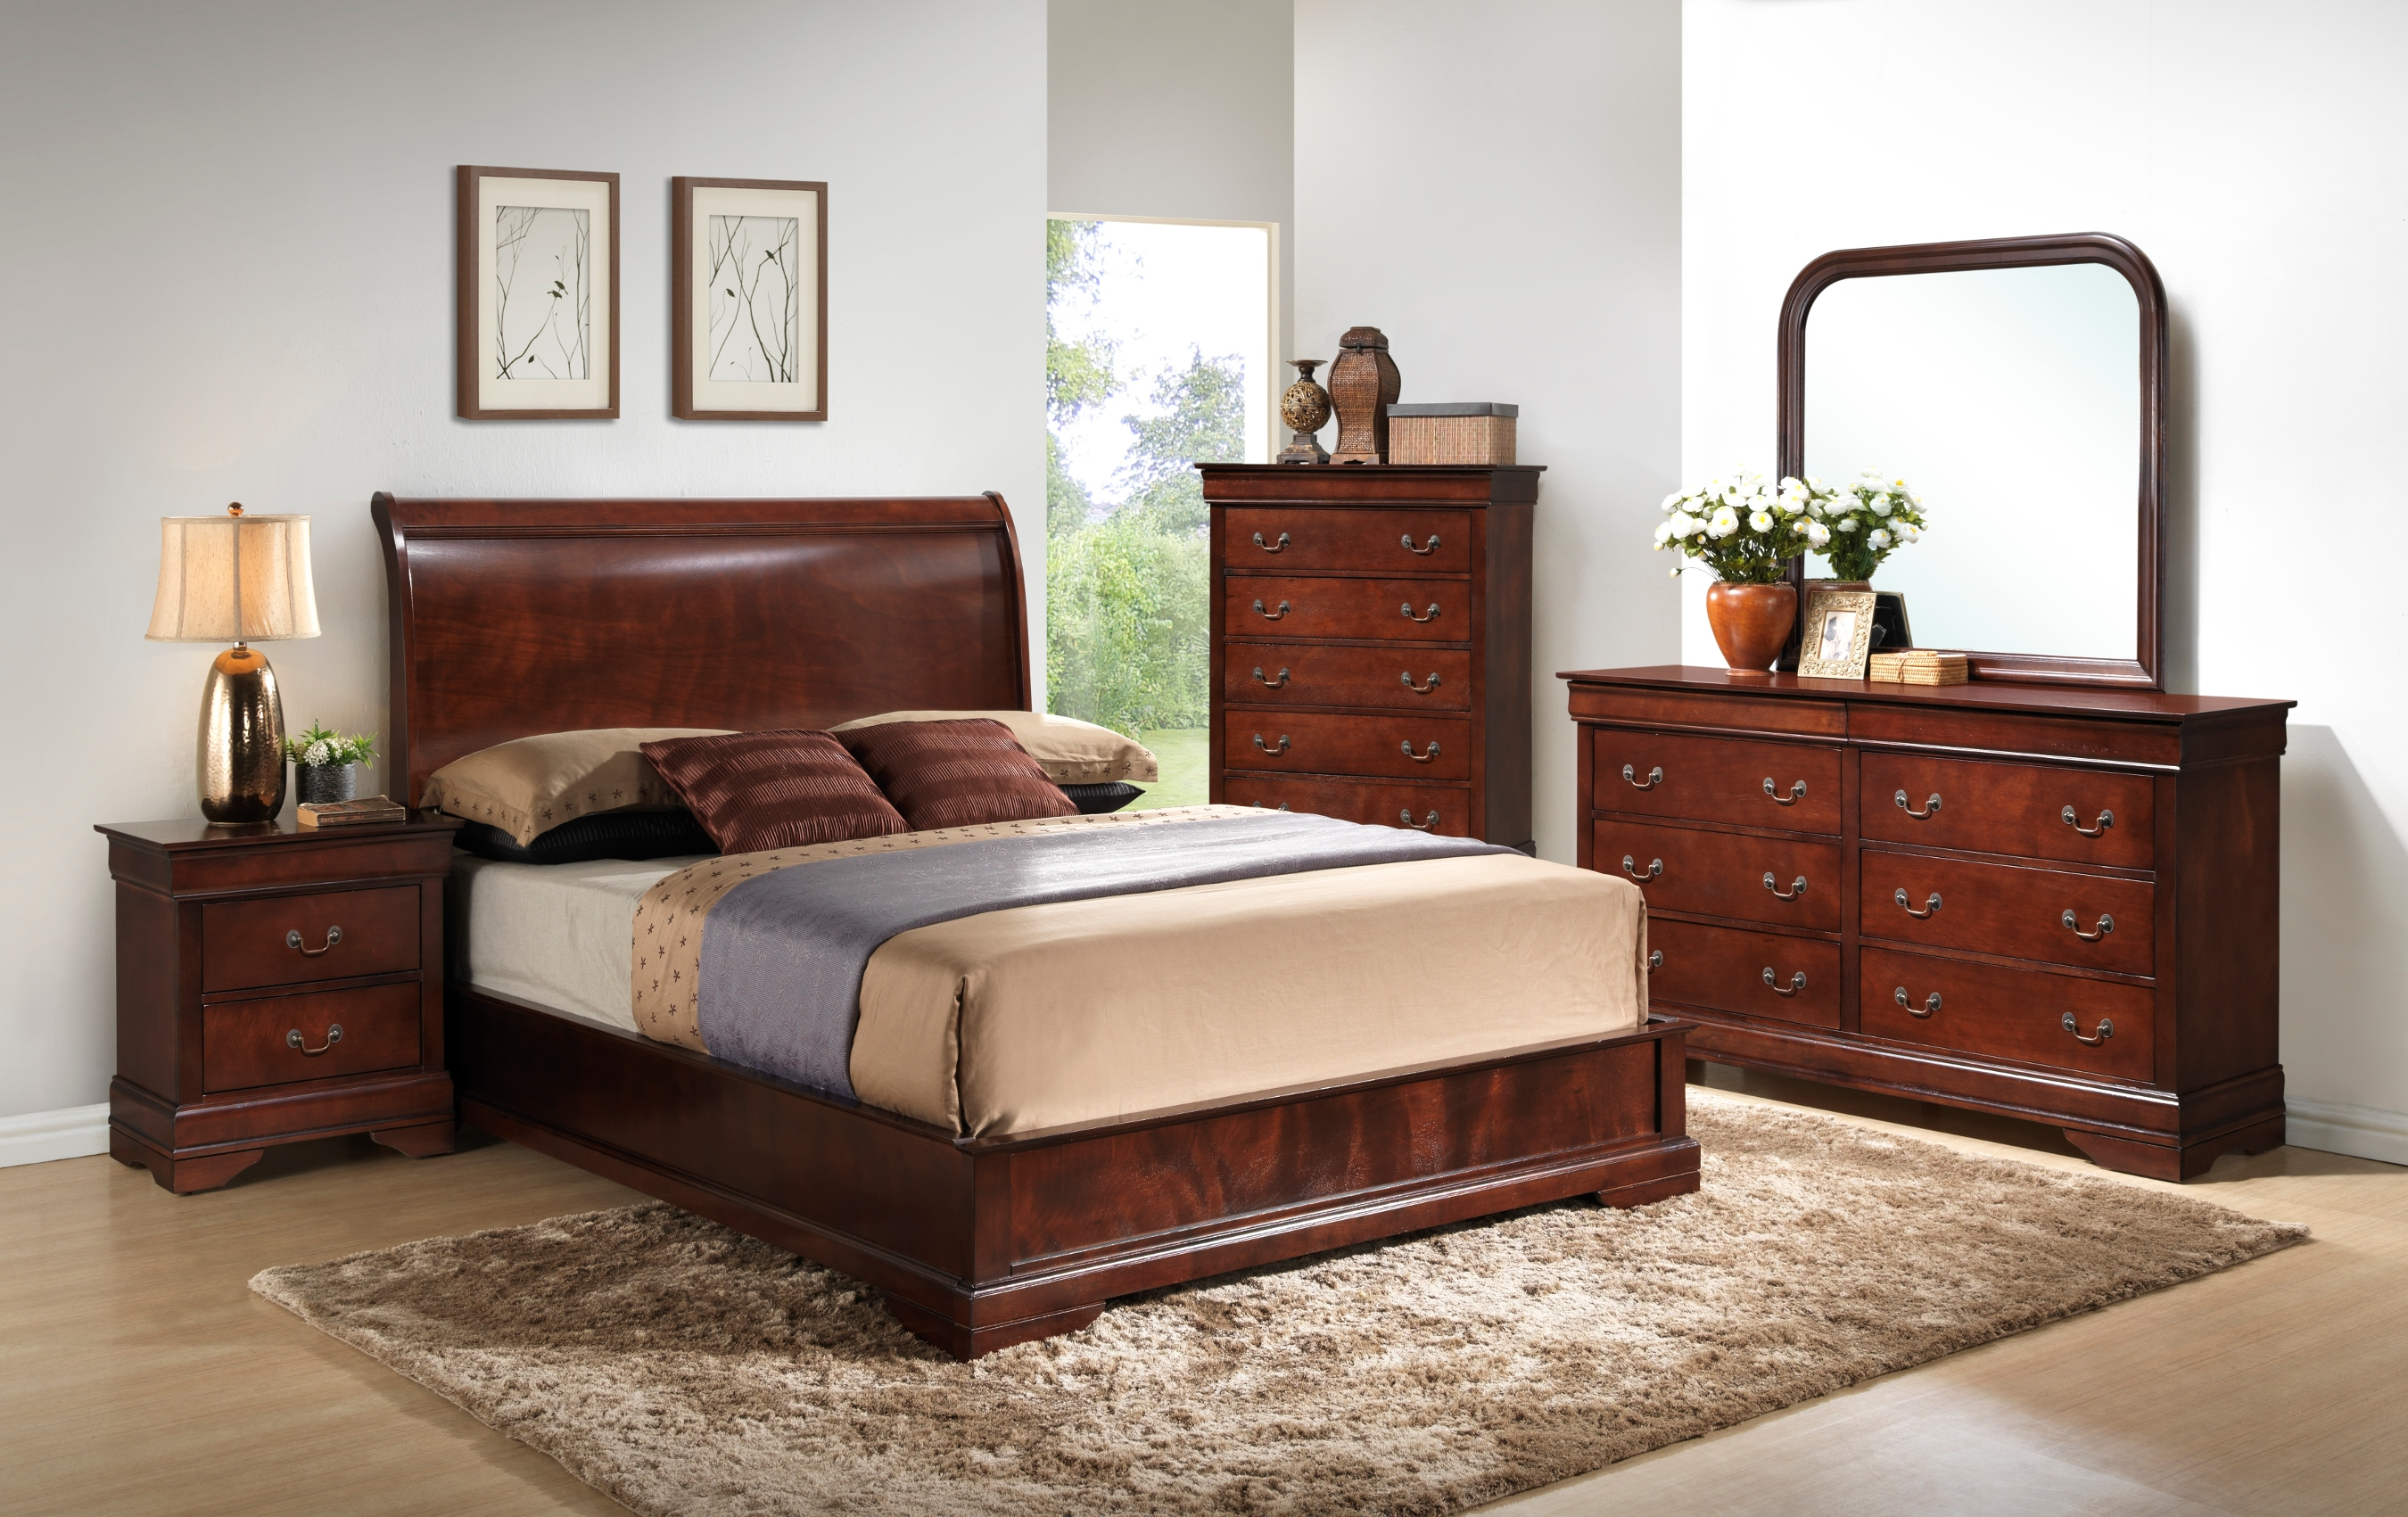 Bedroom Furniture - Claire Queen Bedroom